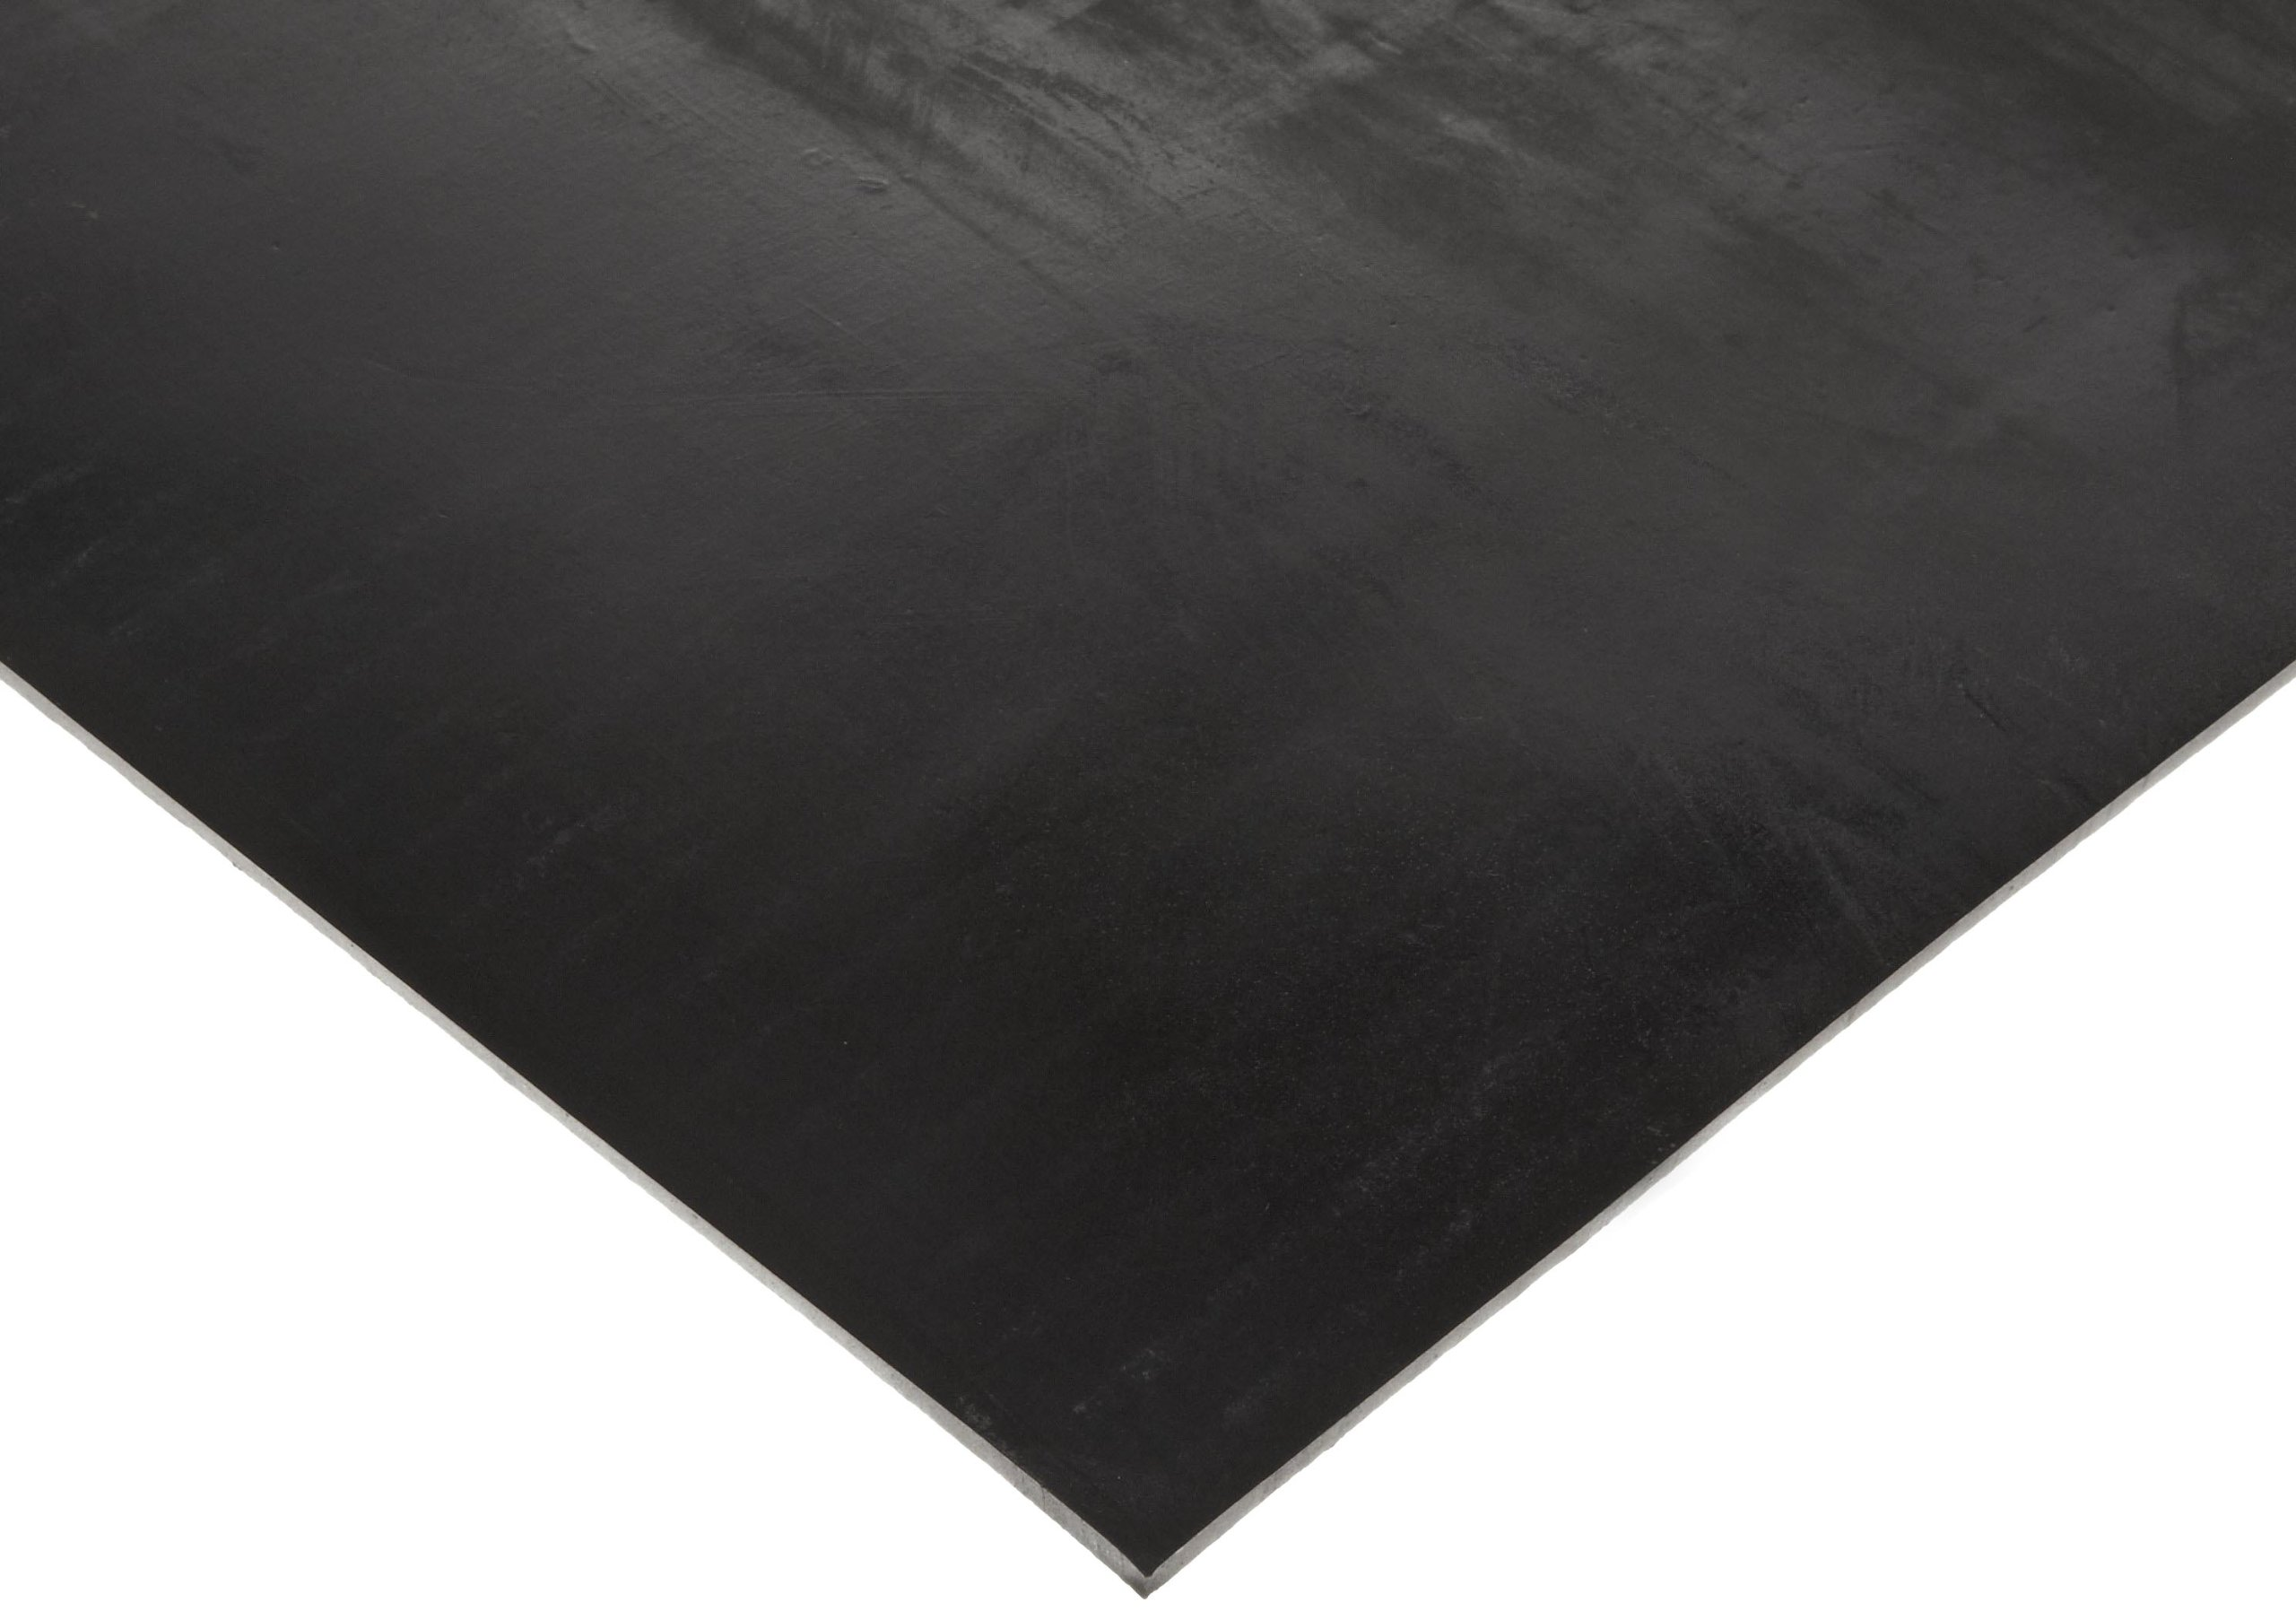 Butyl Sheet, 60A Durometer, Smooth Finish, No Backing, Black, 1/8'' Thickness, 12'' Width, 24'' Length